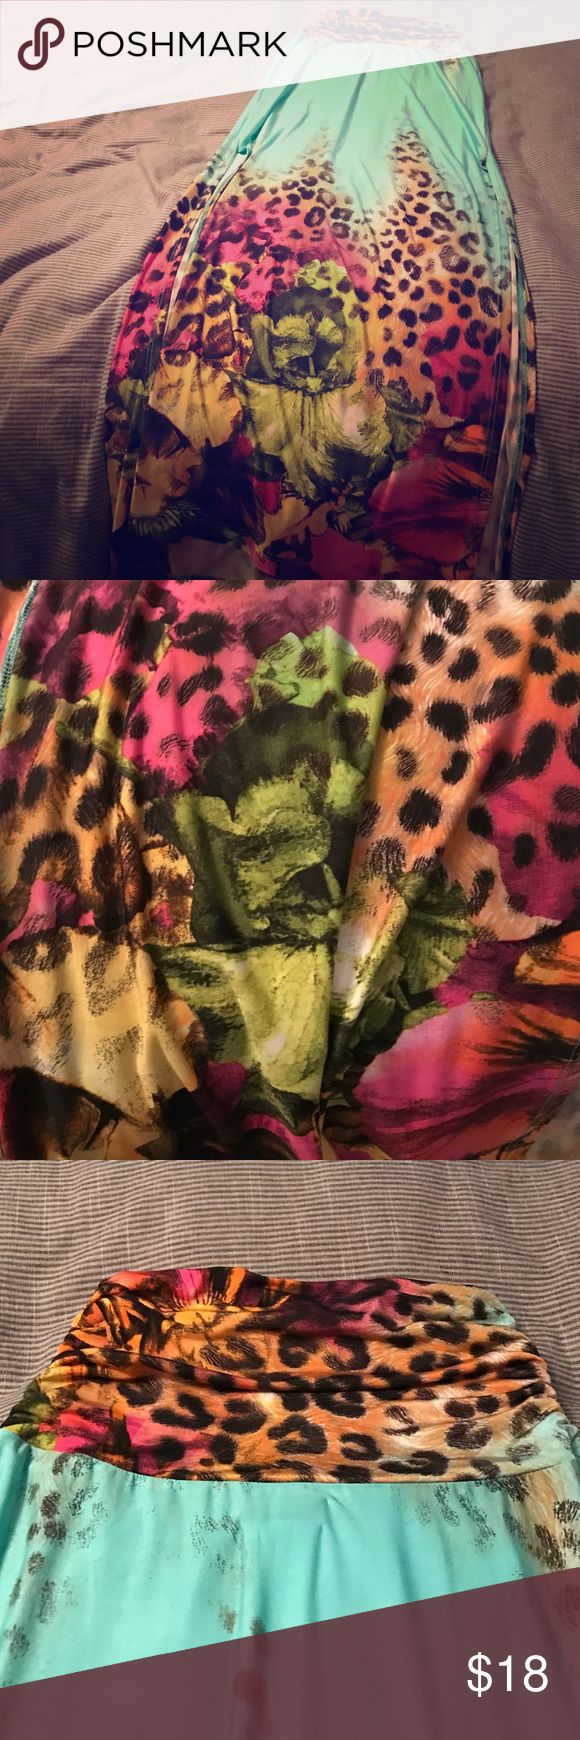 SOLD NWOT Venus turquoise and leopard skirt Never worn turquoise and leopard maxi skirt Venus Skirts Maxi